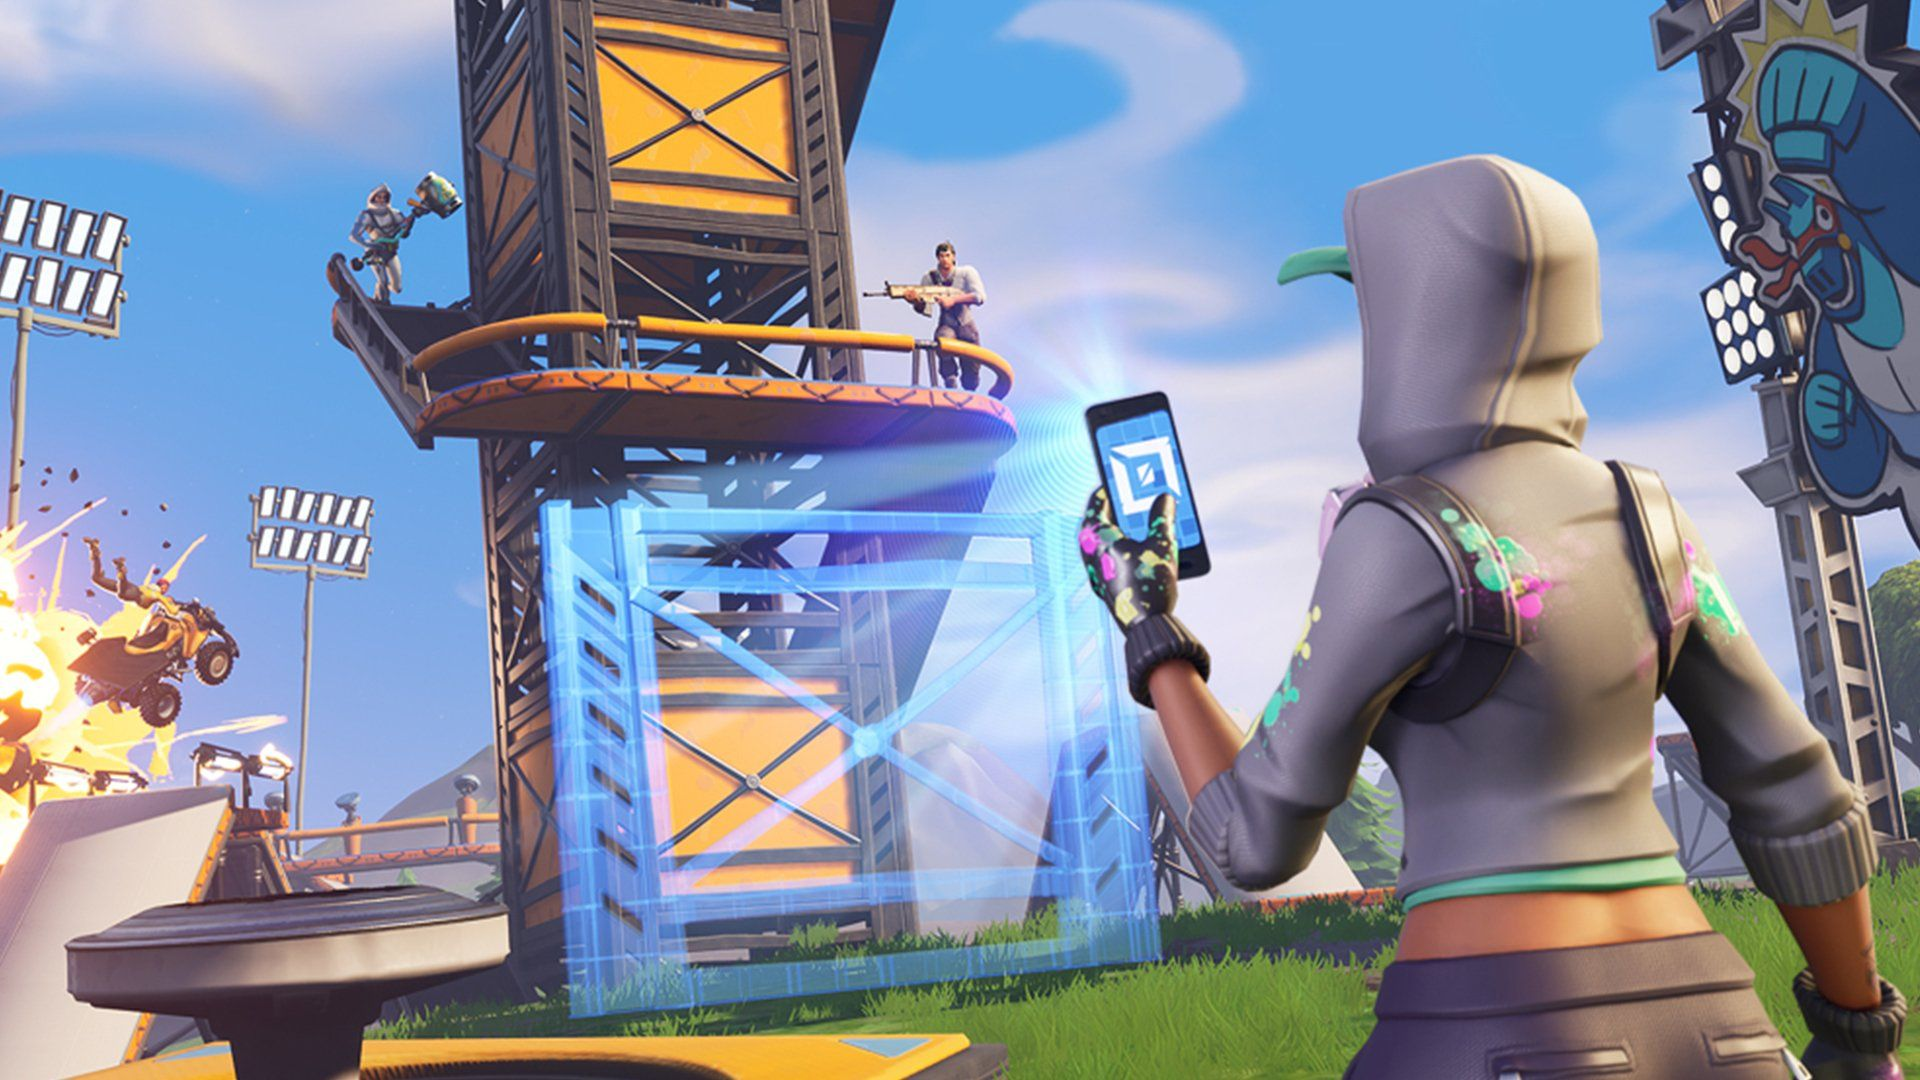 5 Amazing Fortnite Creative Mode Maps With So Many Amazing Fortnite Creative Maps Being Made We Had To Try And Pick 5 We Thin Fortnite Knight Outfit Epic Games